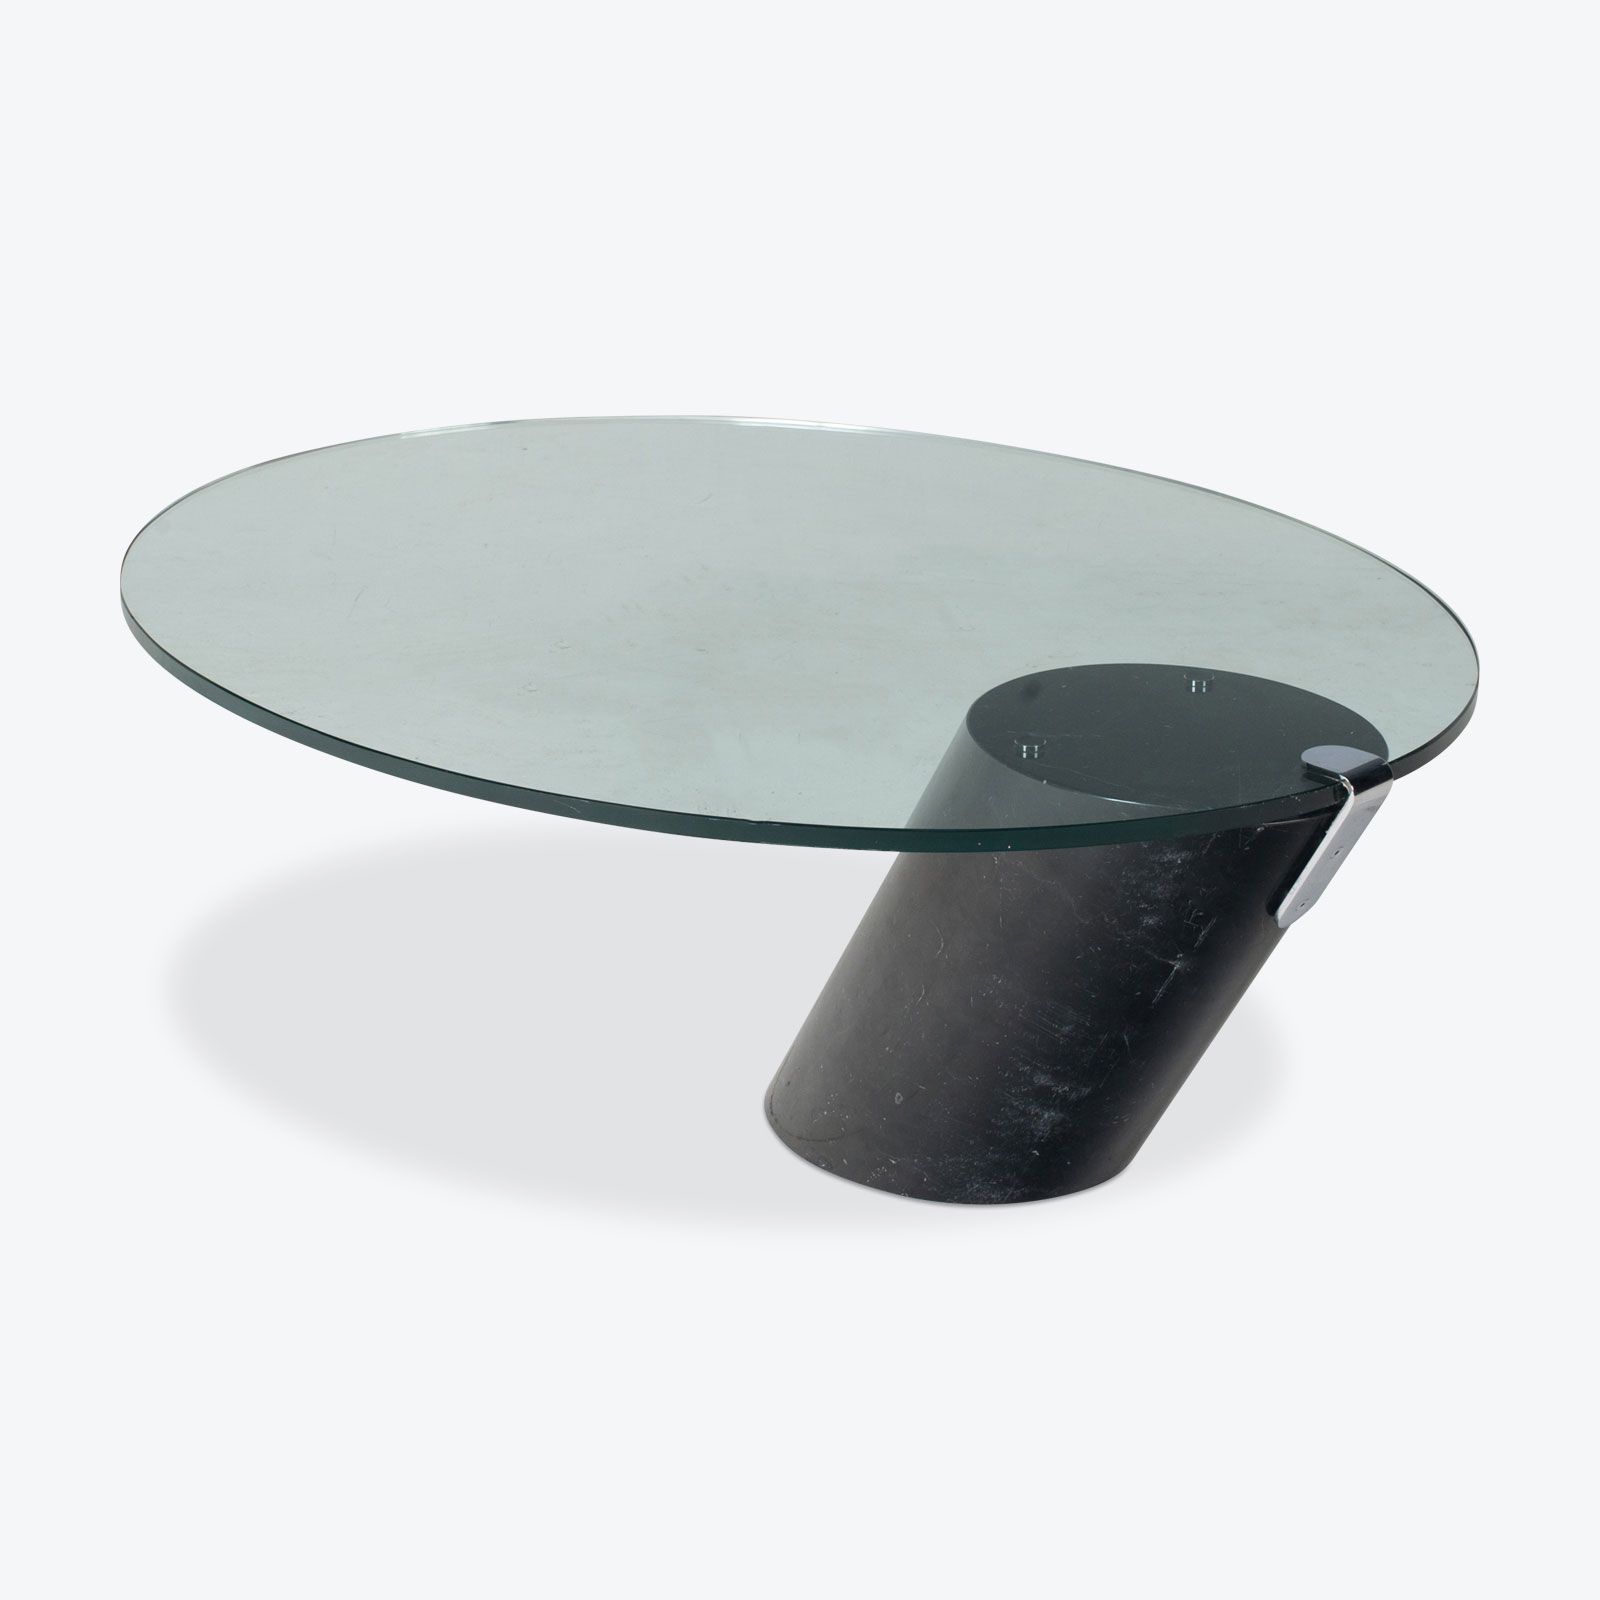 Picture of: K1000 Oval Coffee Table By Ronald Schmitt In Glass And Black Marble 1974 Switzerland Modern Times